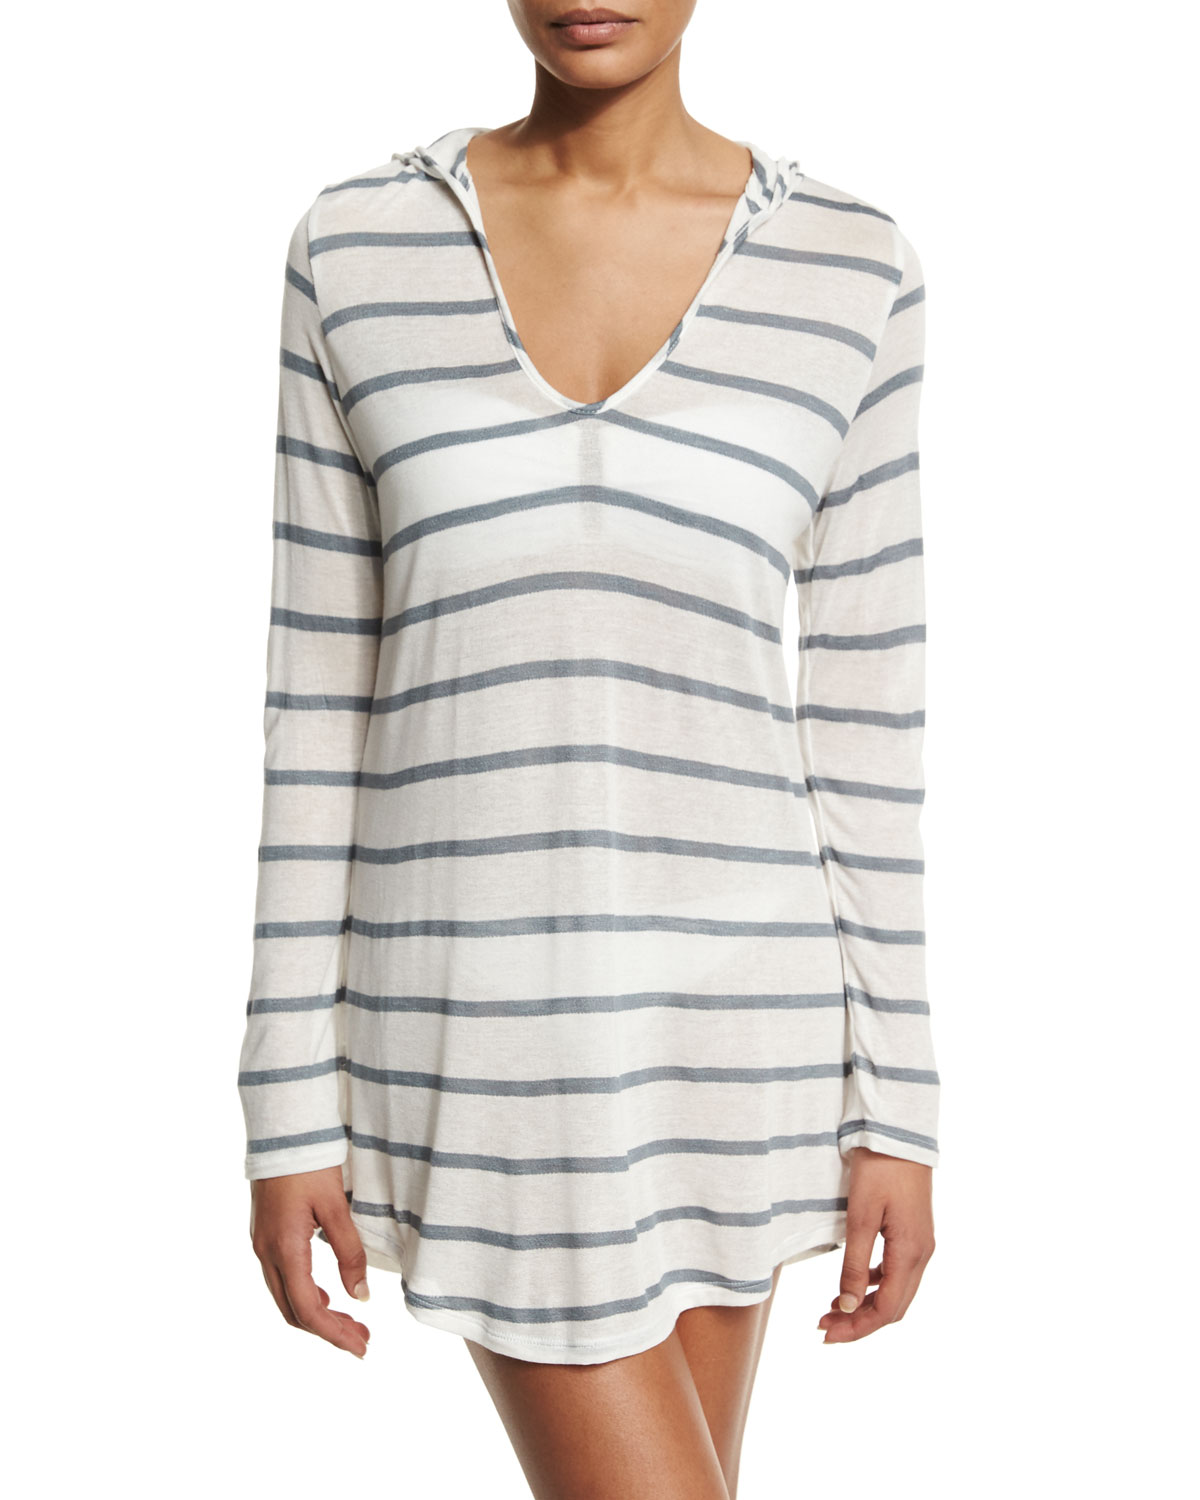 Striped Long-Sleeve Hooded Tunic Coverup, Size: LARGE/12, Gray - Splendid